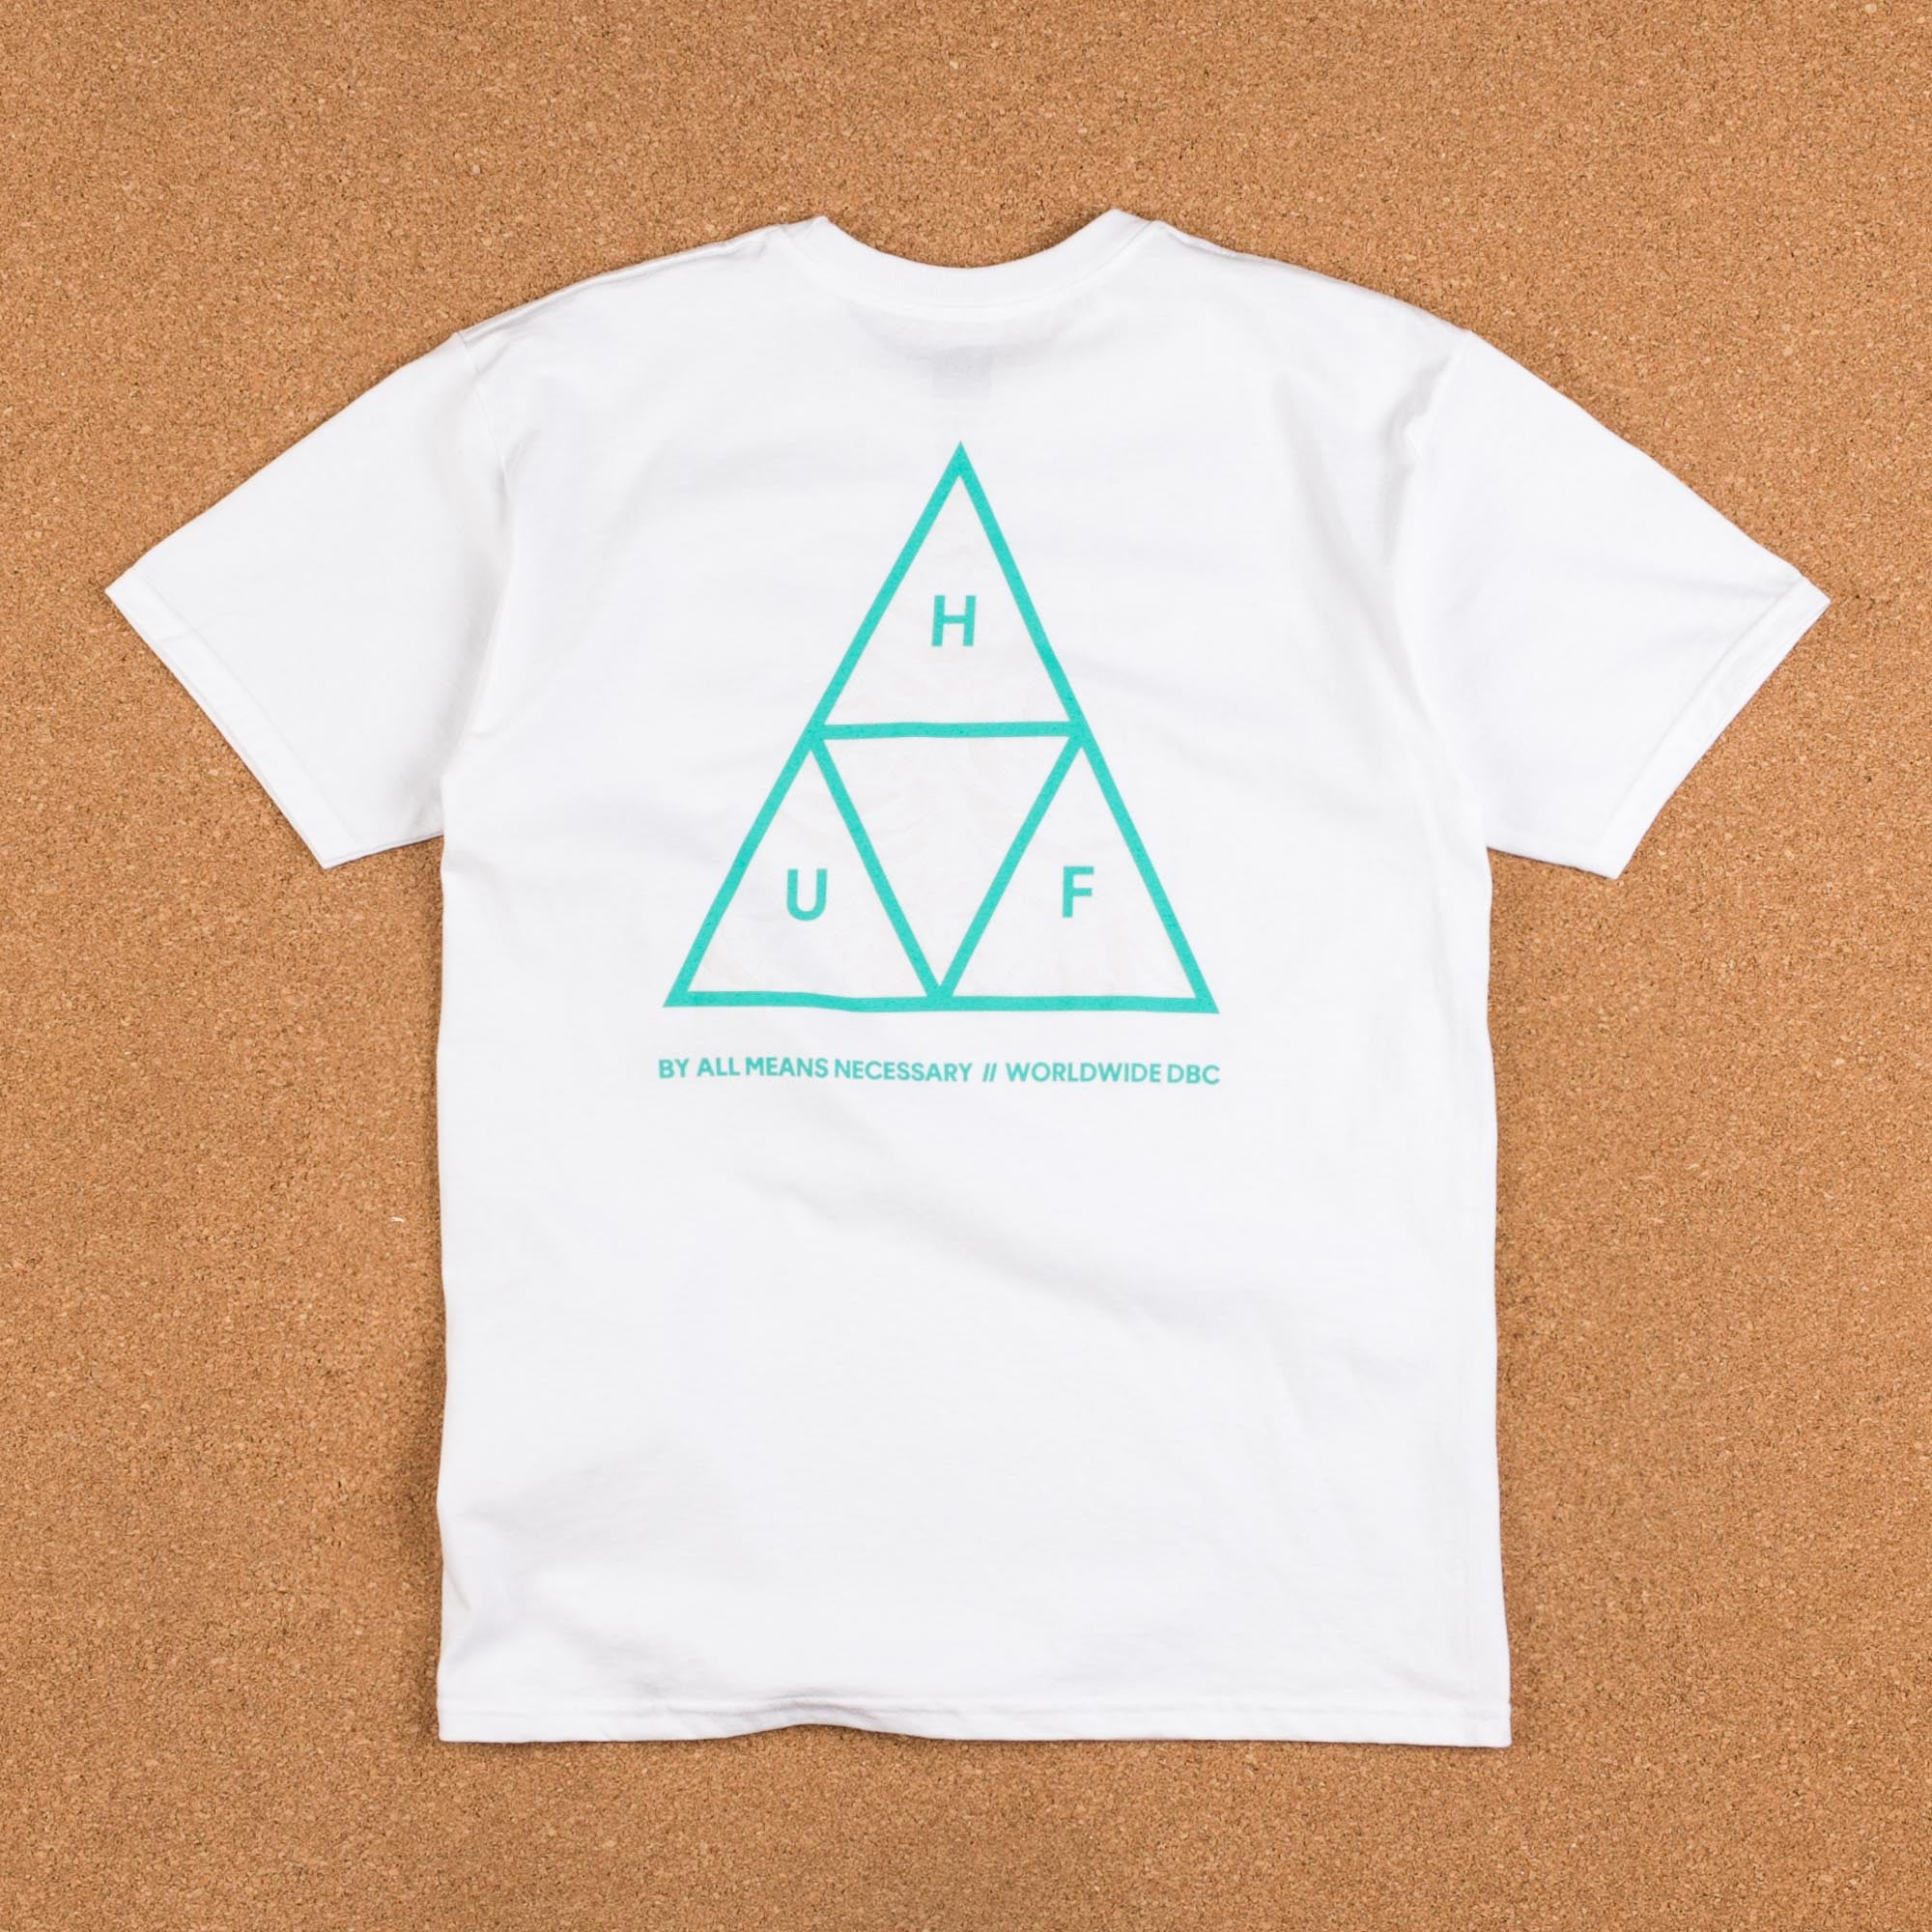 HUF Triple Triangle UV T-Shirt - White